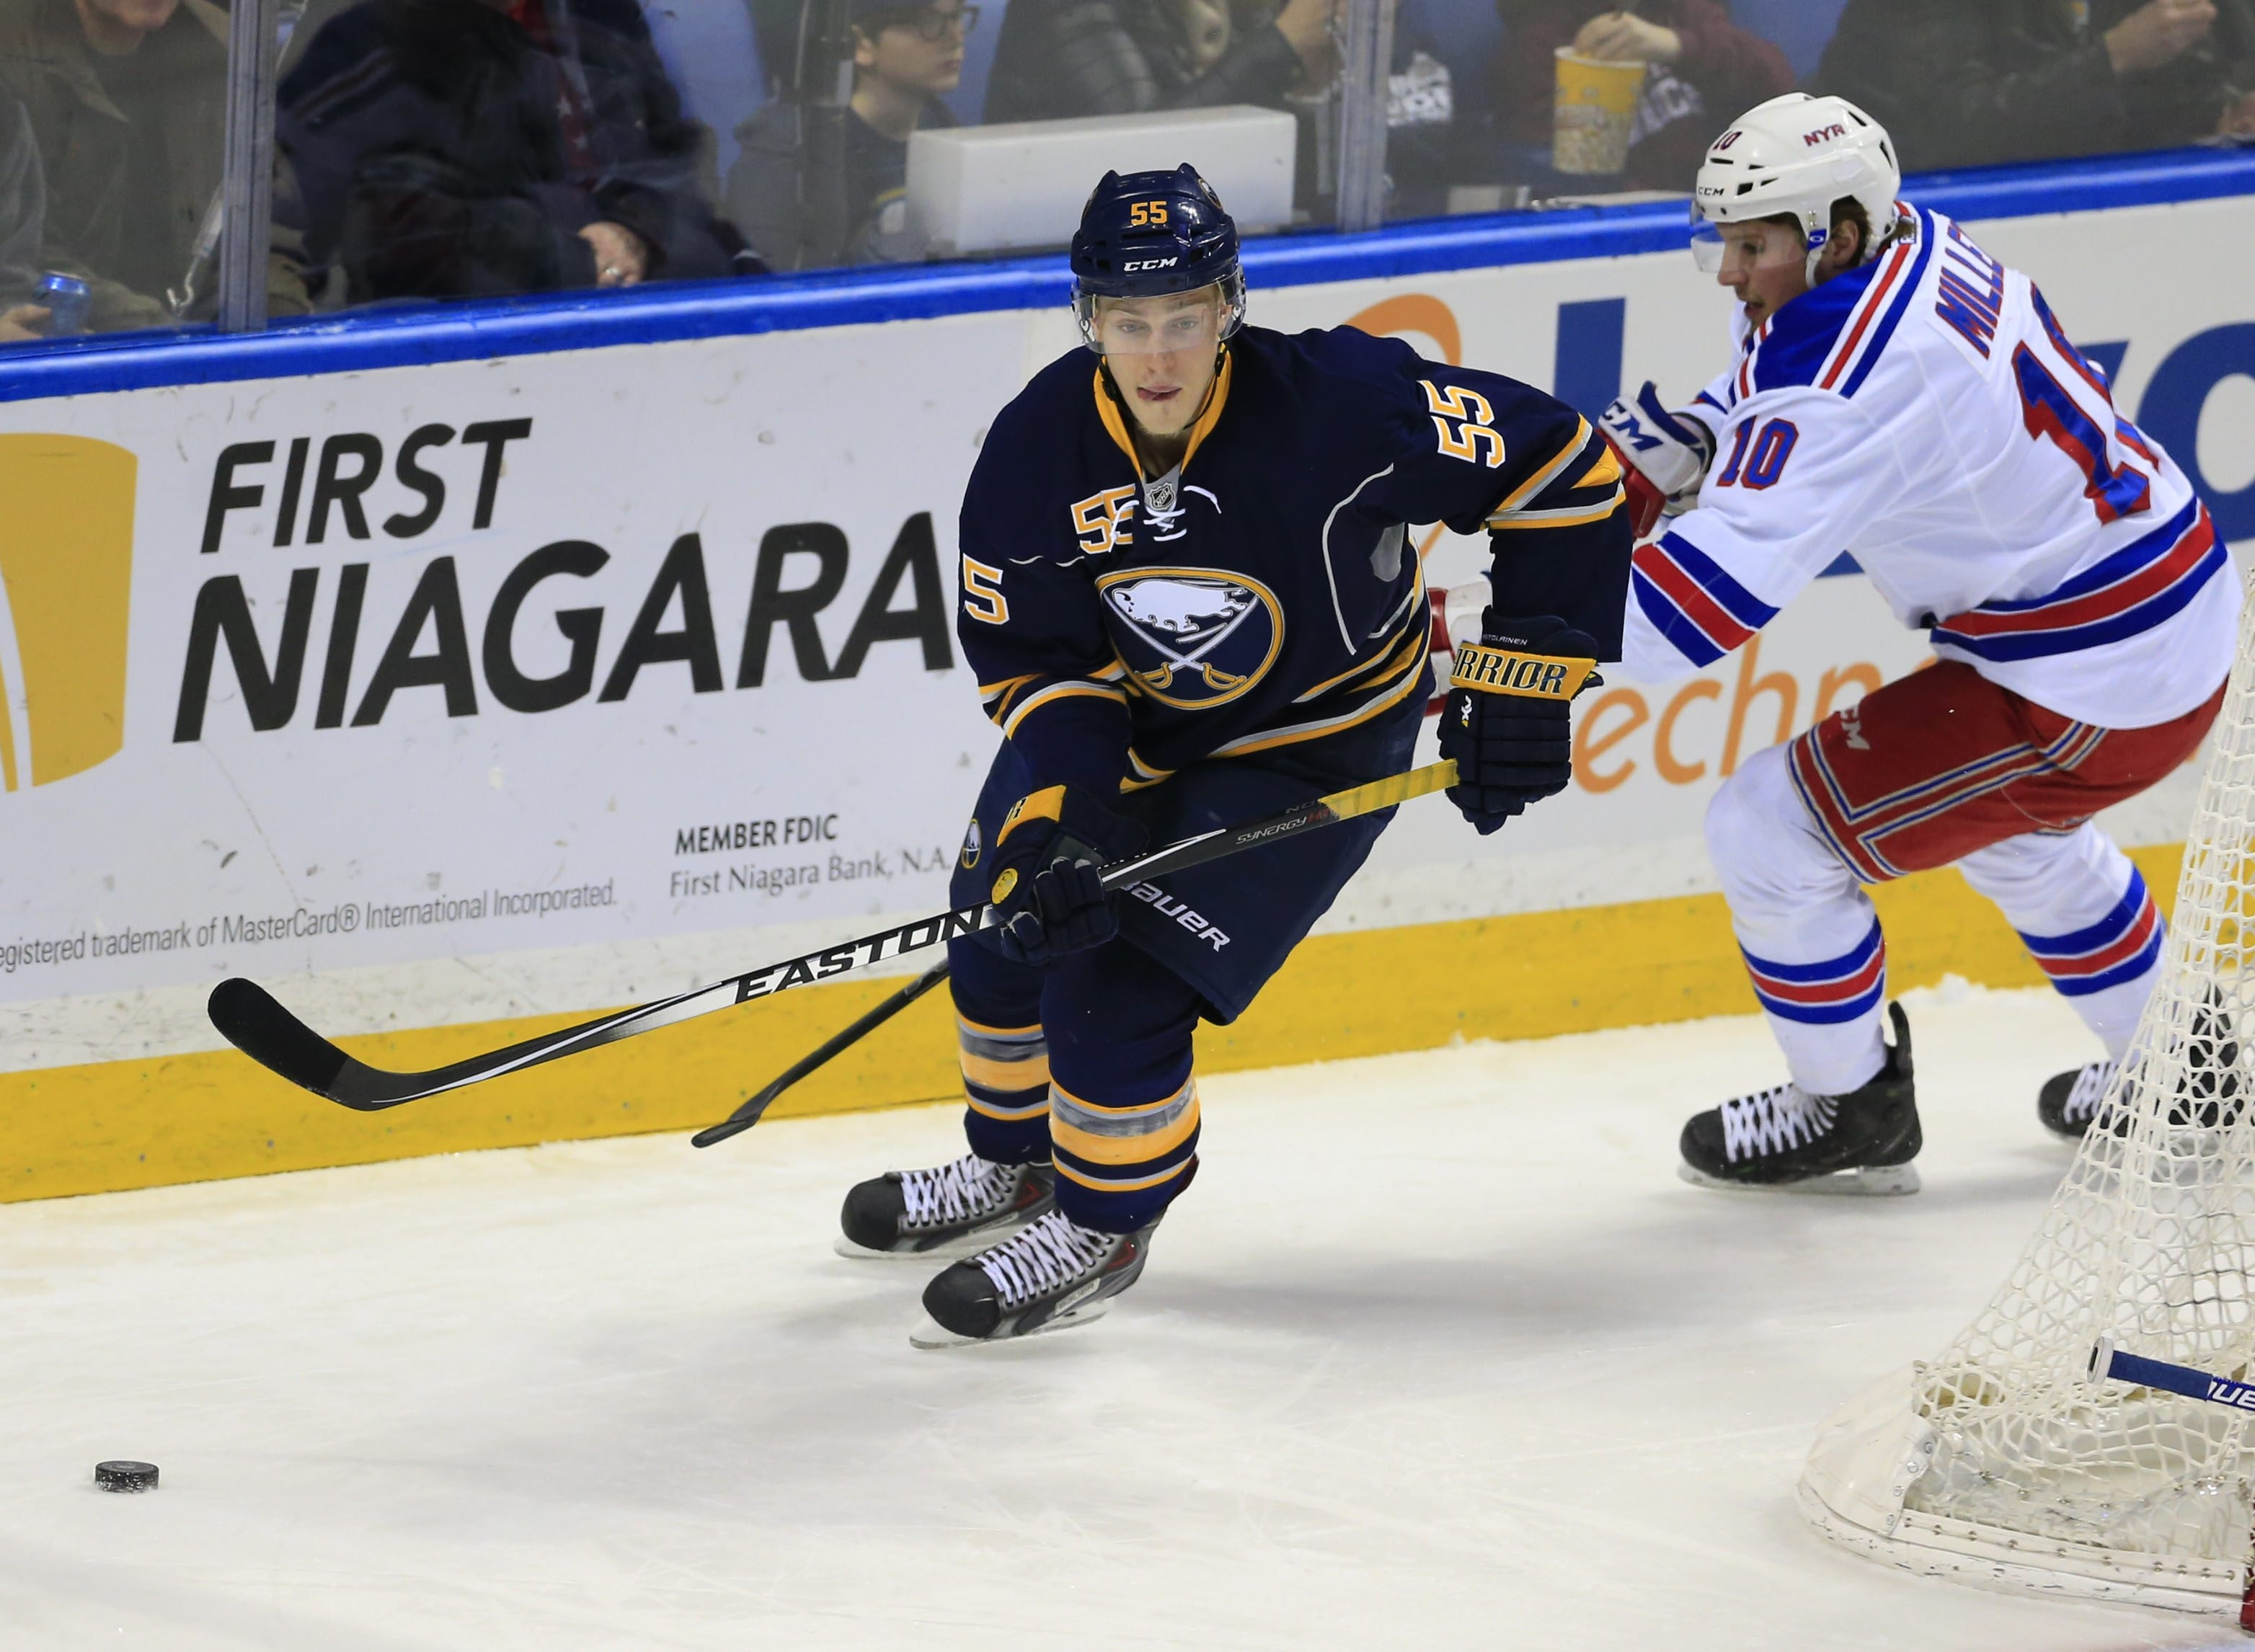 Defenseman Rasmus Ristolainen, who is expected to be counted on heavily by the Sabres this season, will miss 7-10 of training camp with an upper-body injury.